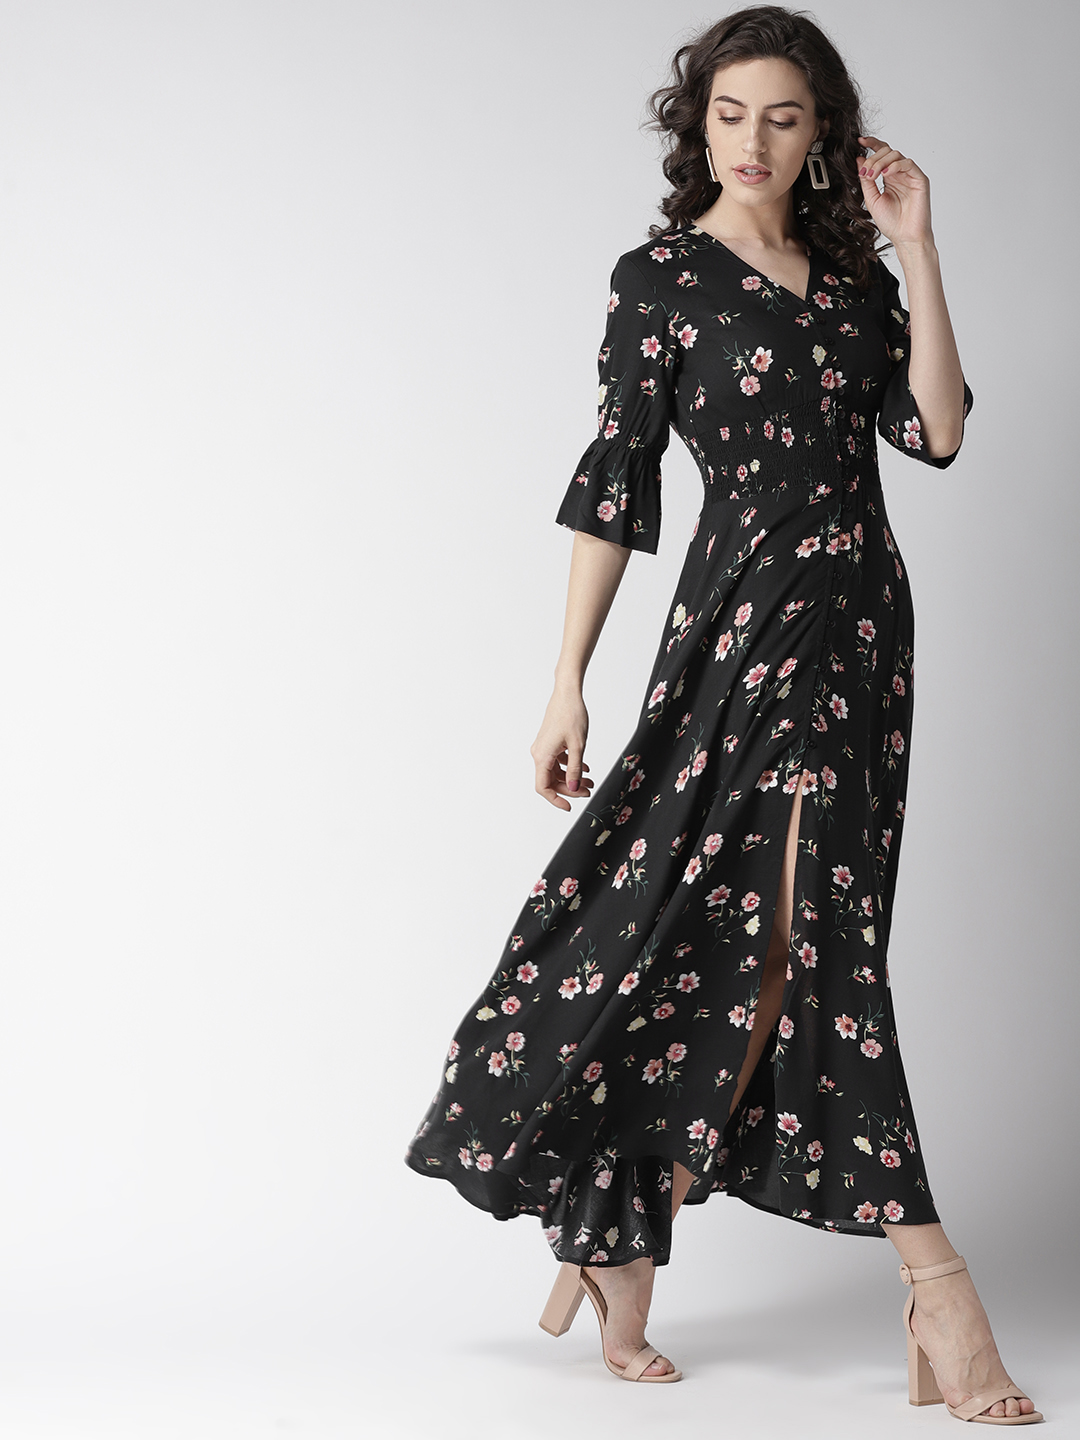 Dresses-Spot On Style Floral Maxi Dress6